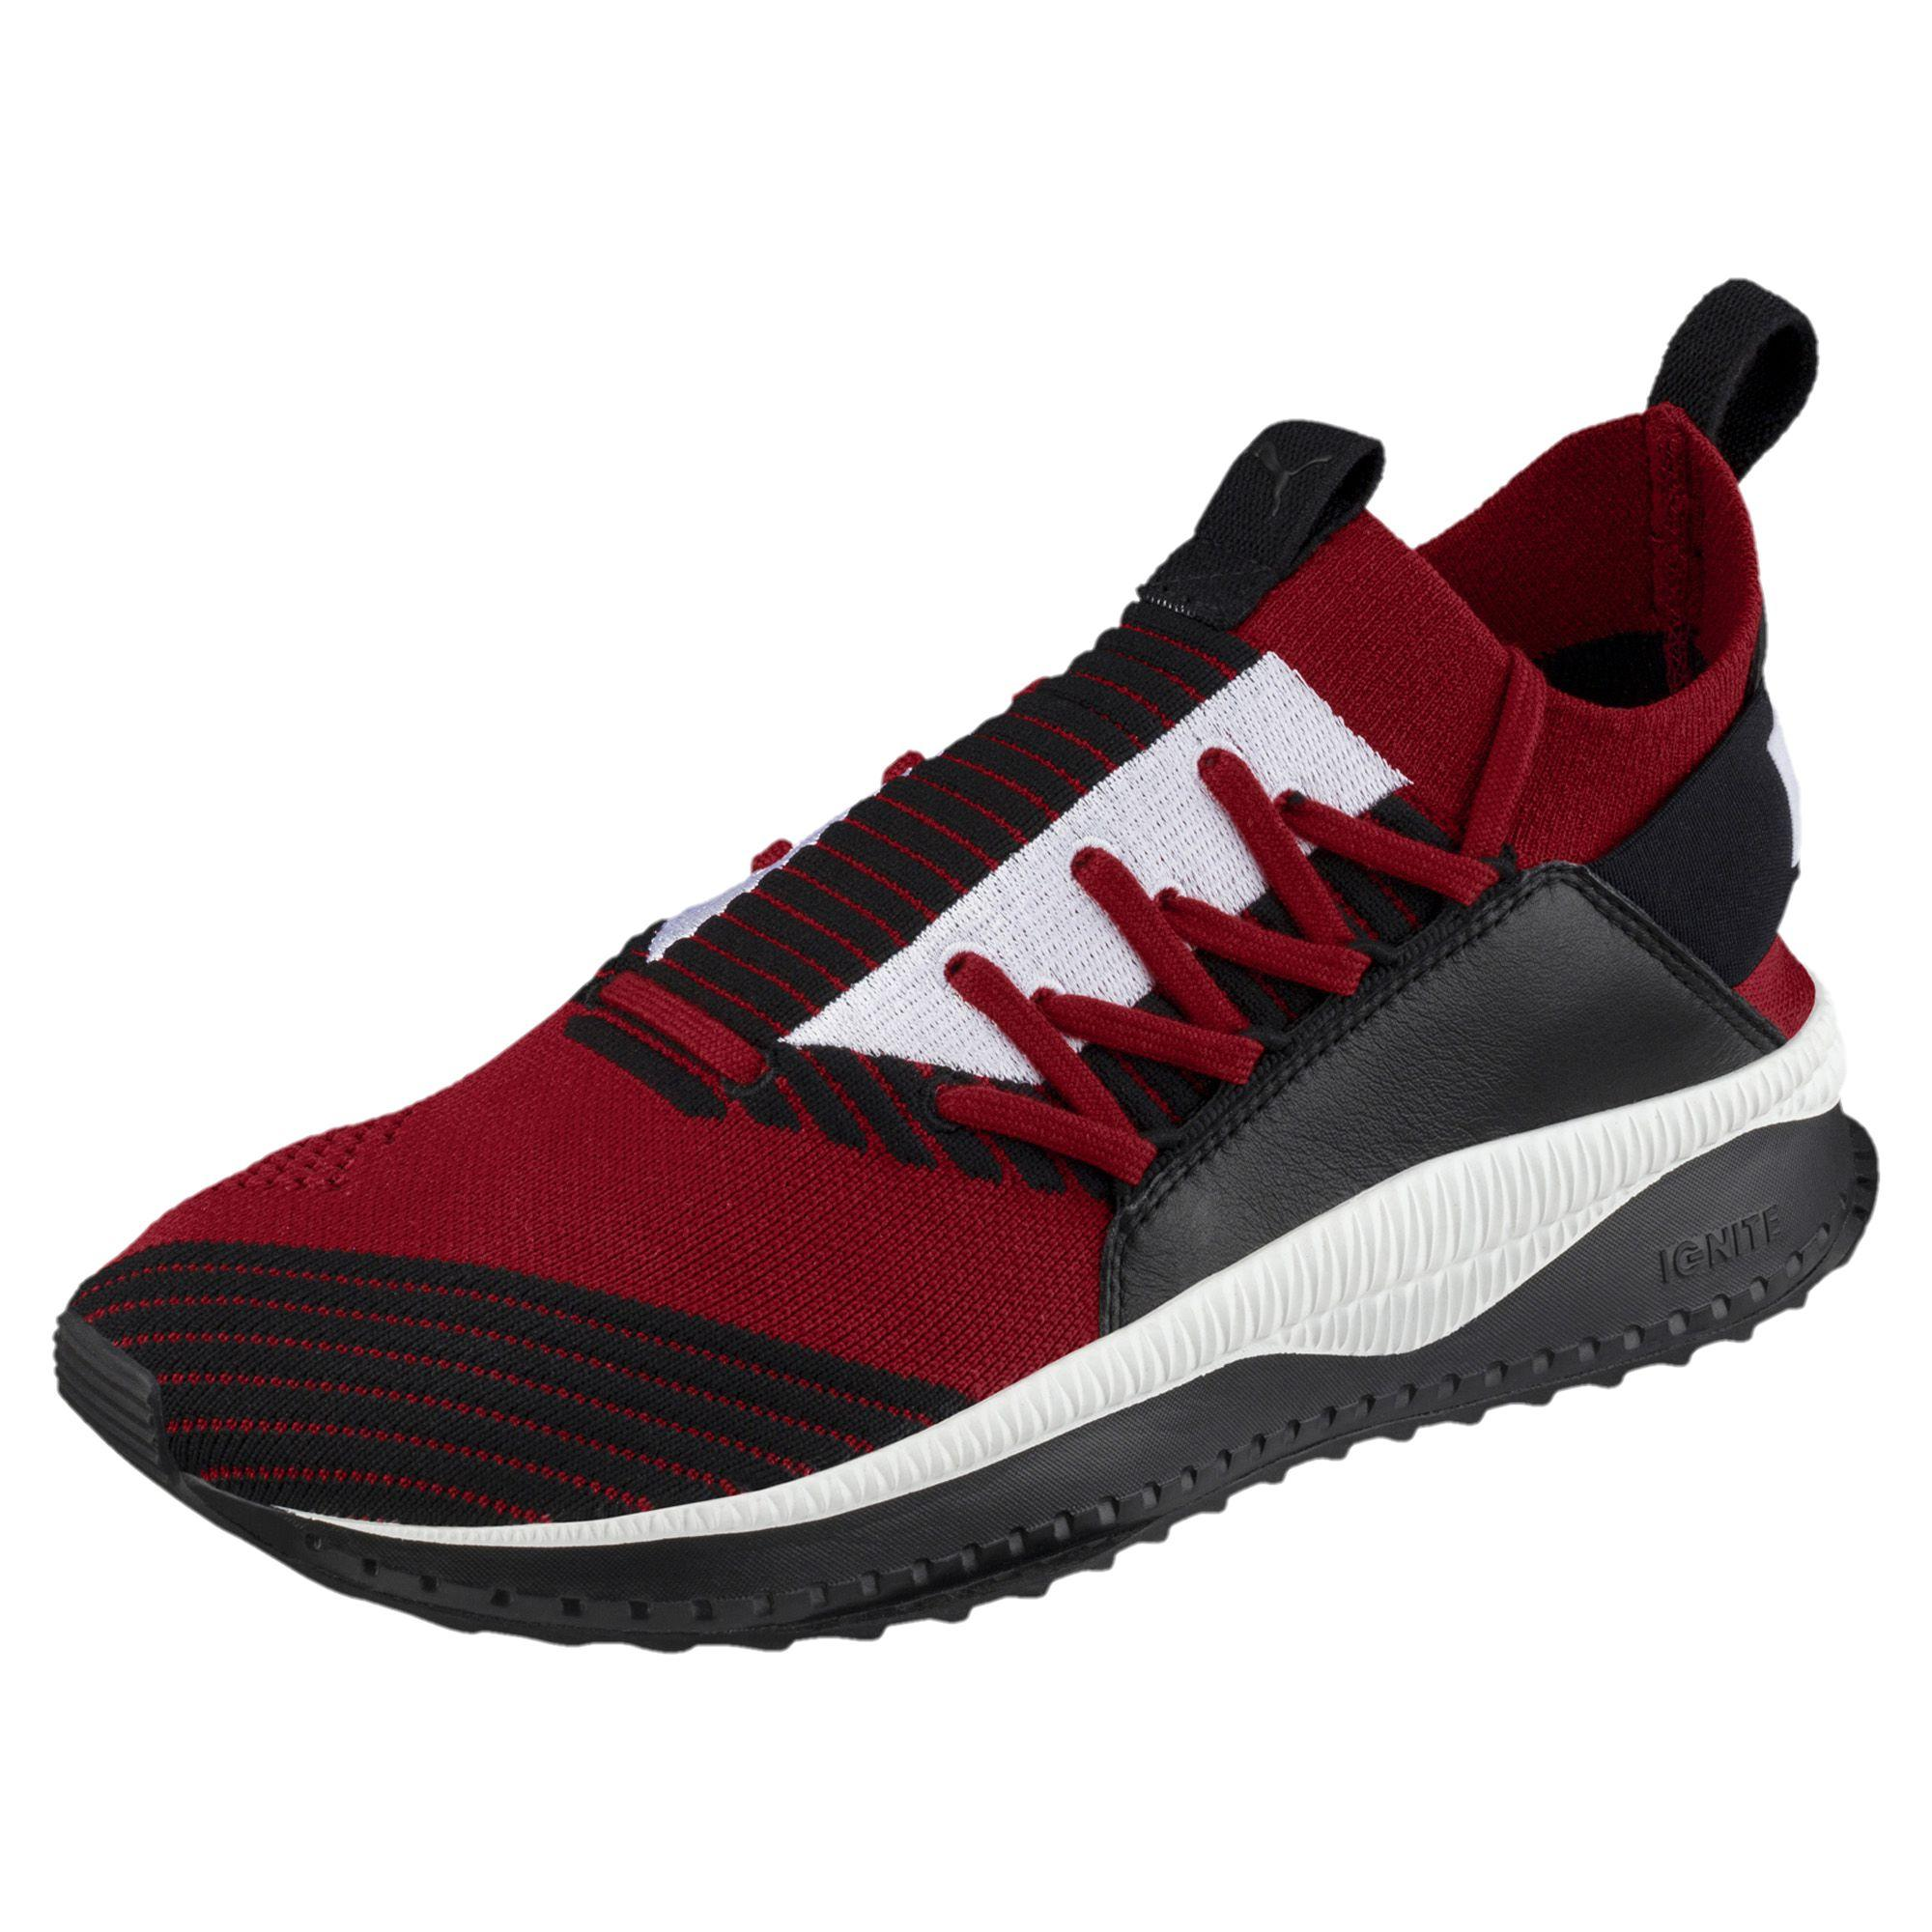 7f68ac43bf6ffe Puma Shoes Tsugi Jun Red Dahlia-puma Black - Tifoshop.com